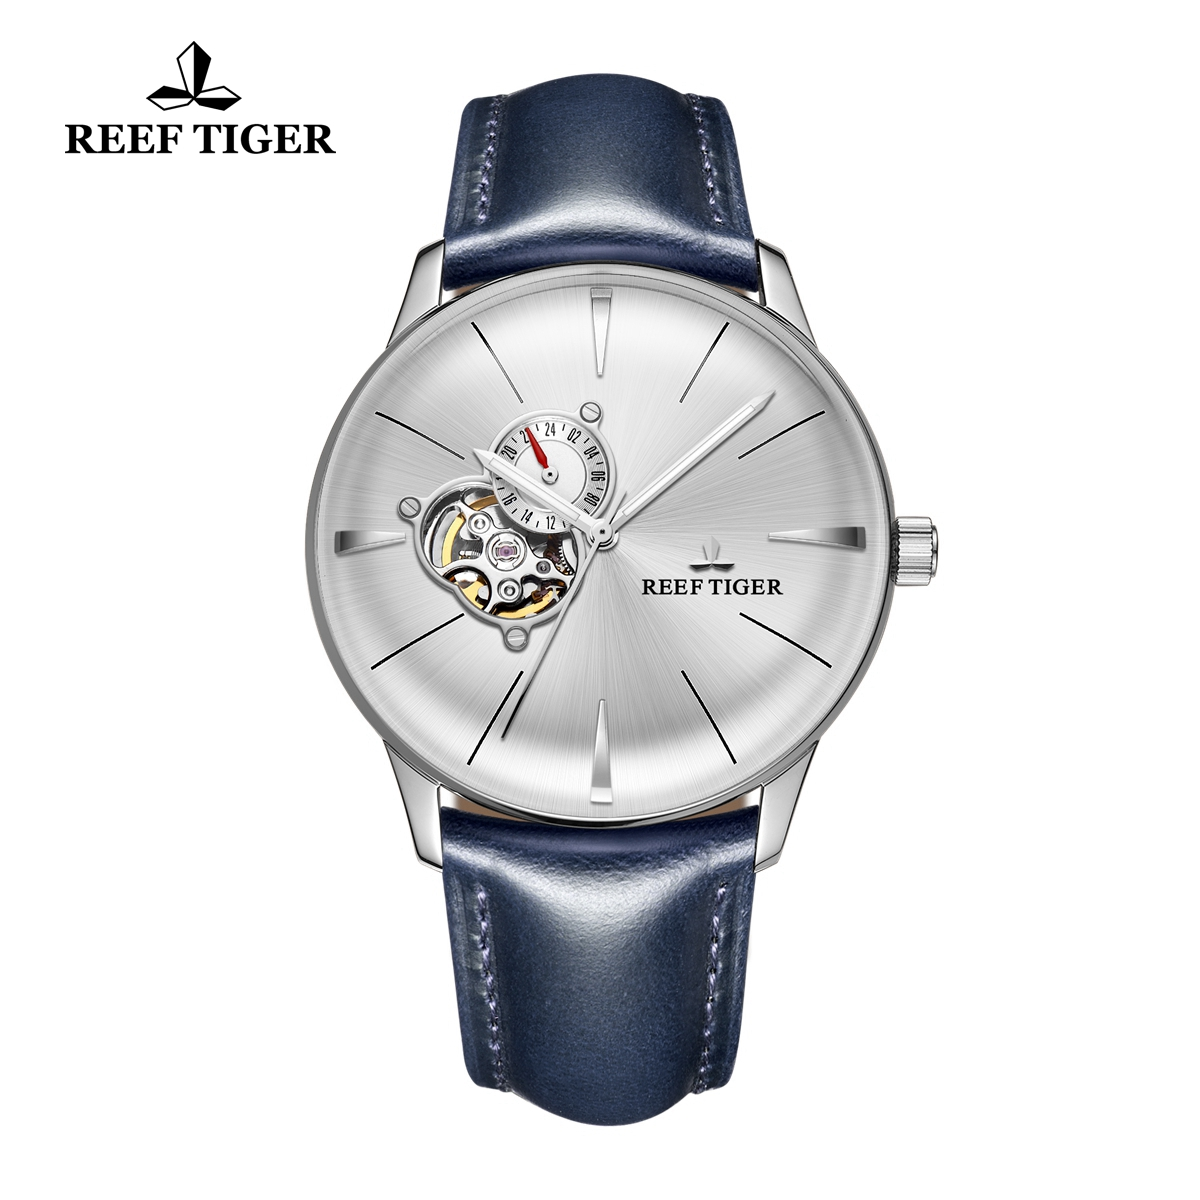 Reef Tiger Classic Glory Fashion Automatic Watch Leather Strap White Dial For Men Watch RGA8239-YWBH